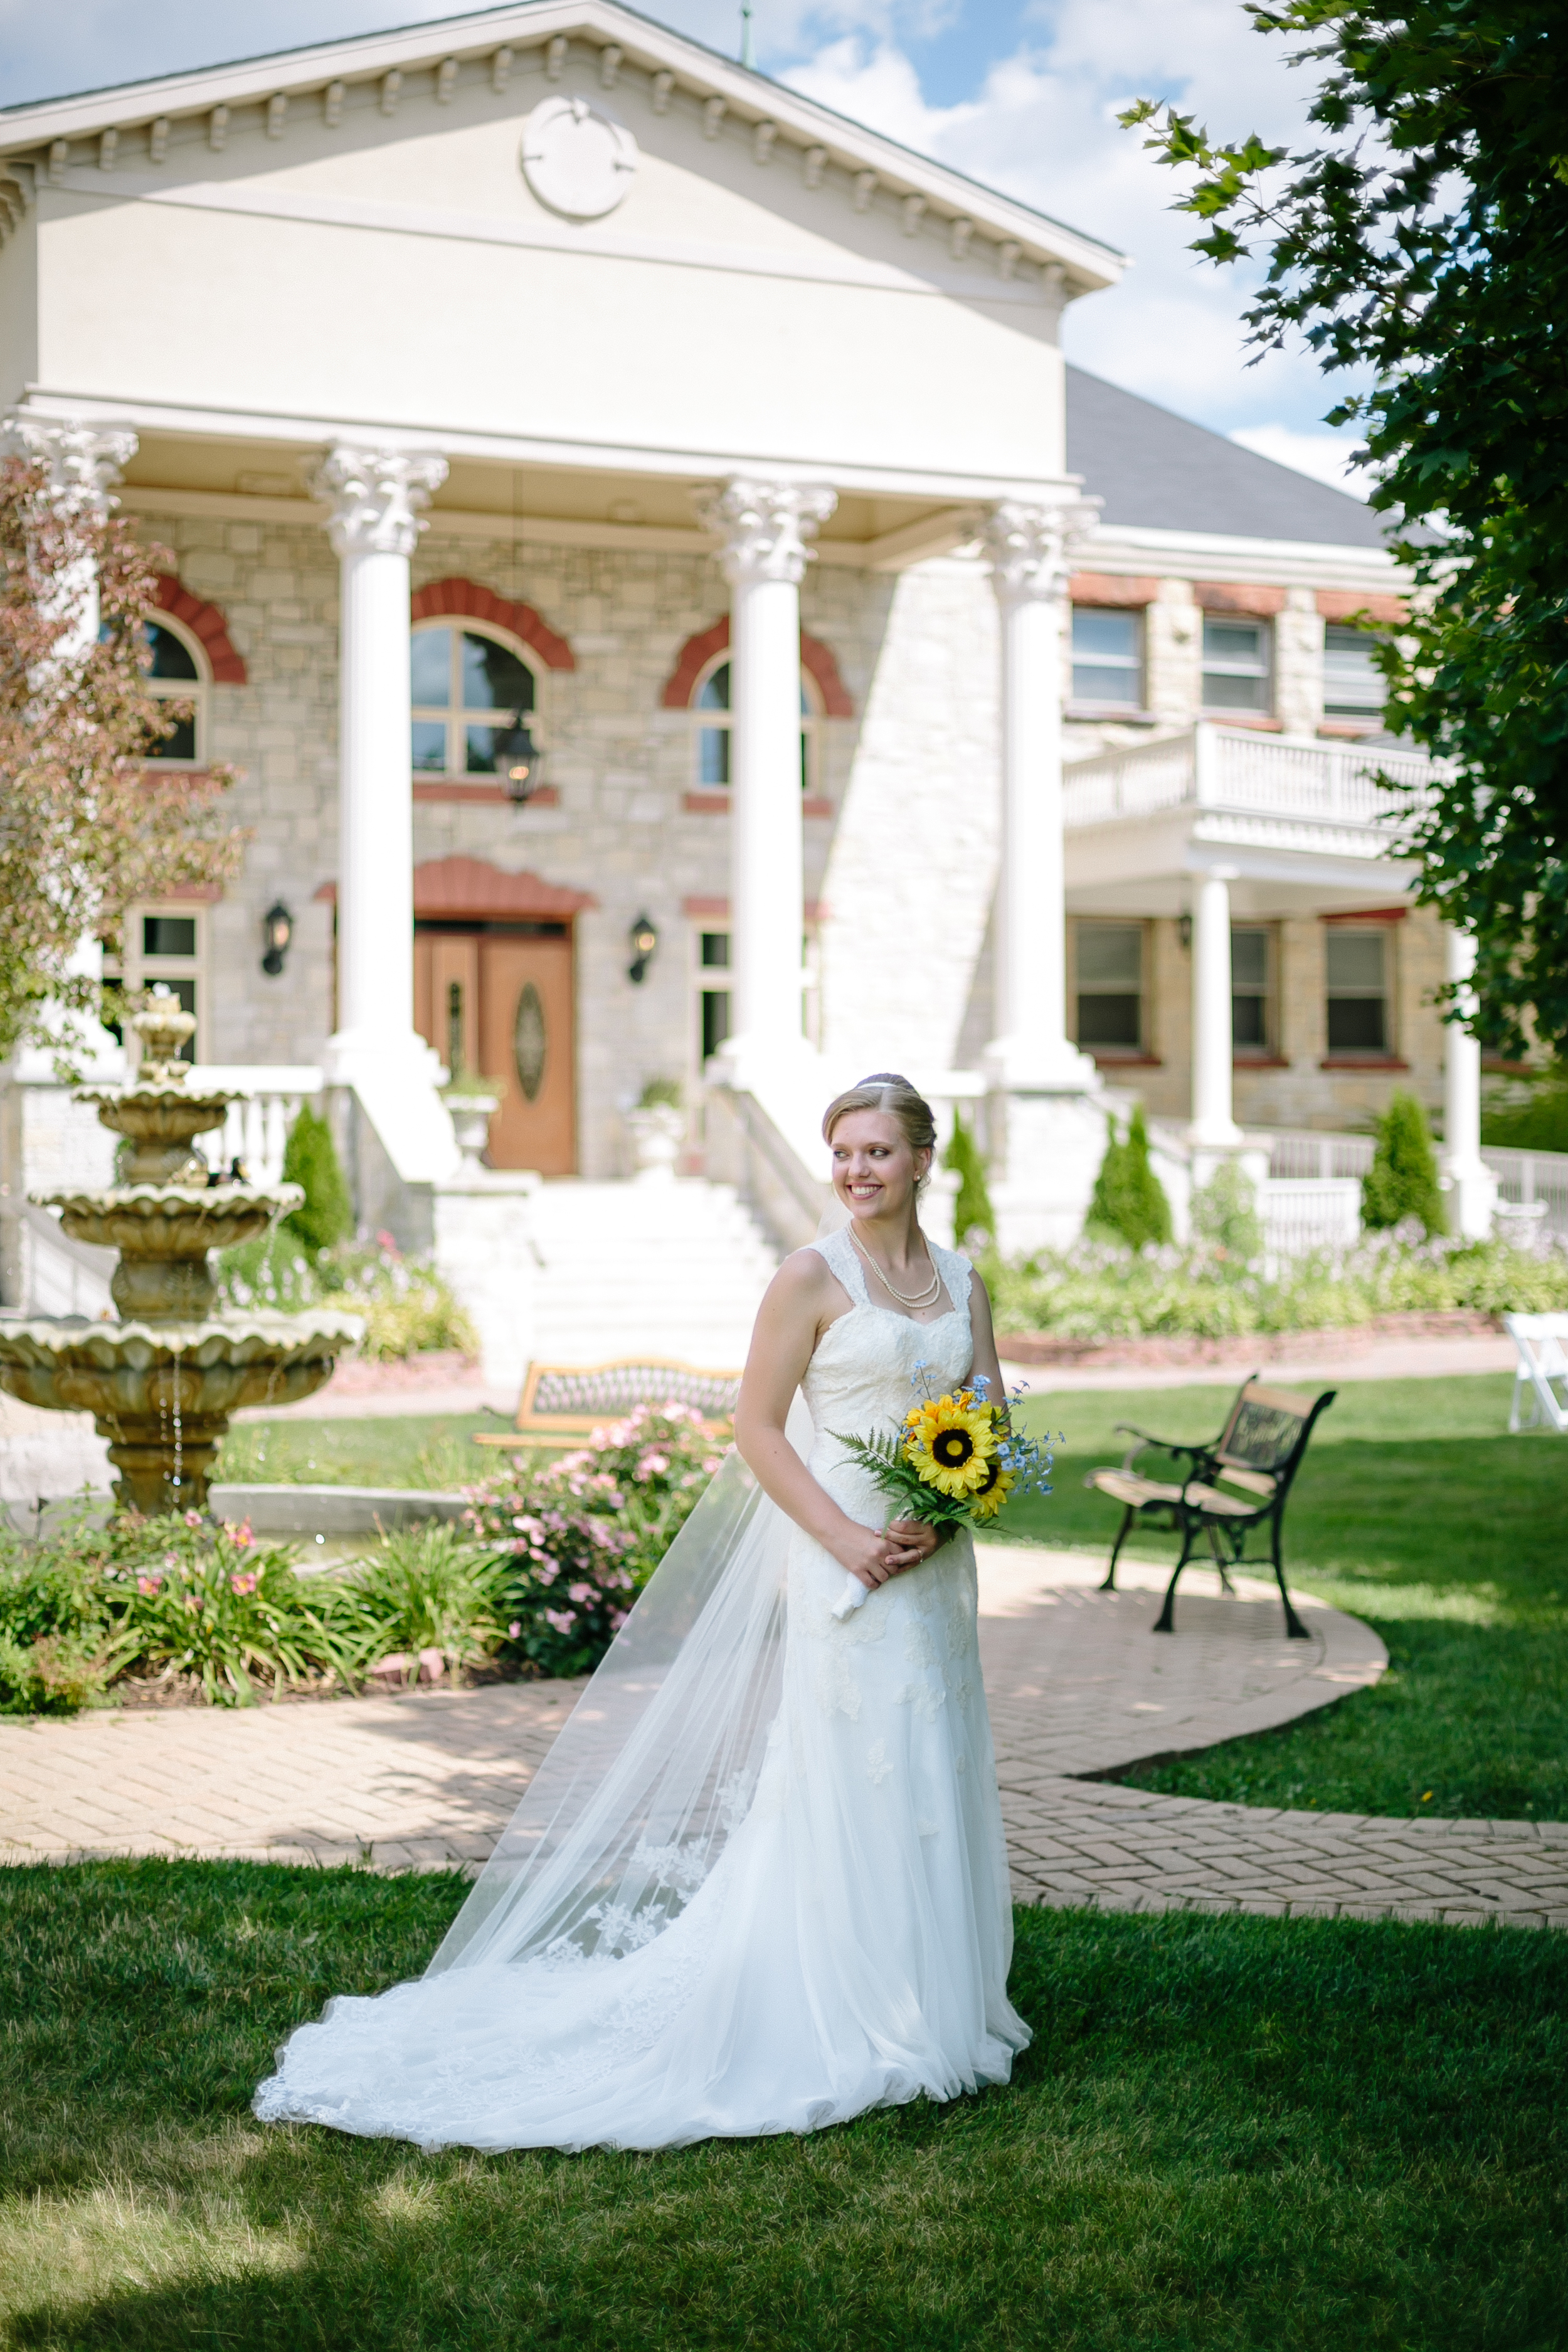 Jacob Henry Mansion Estate Joliet, Illinois - Wayne & Leanne Married - Corrie Mick Photography-127.jpg